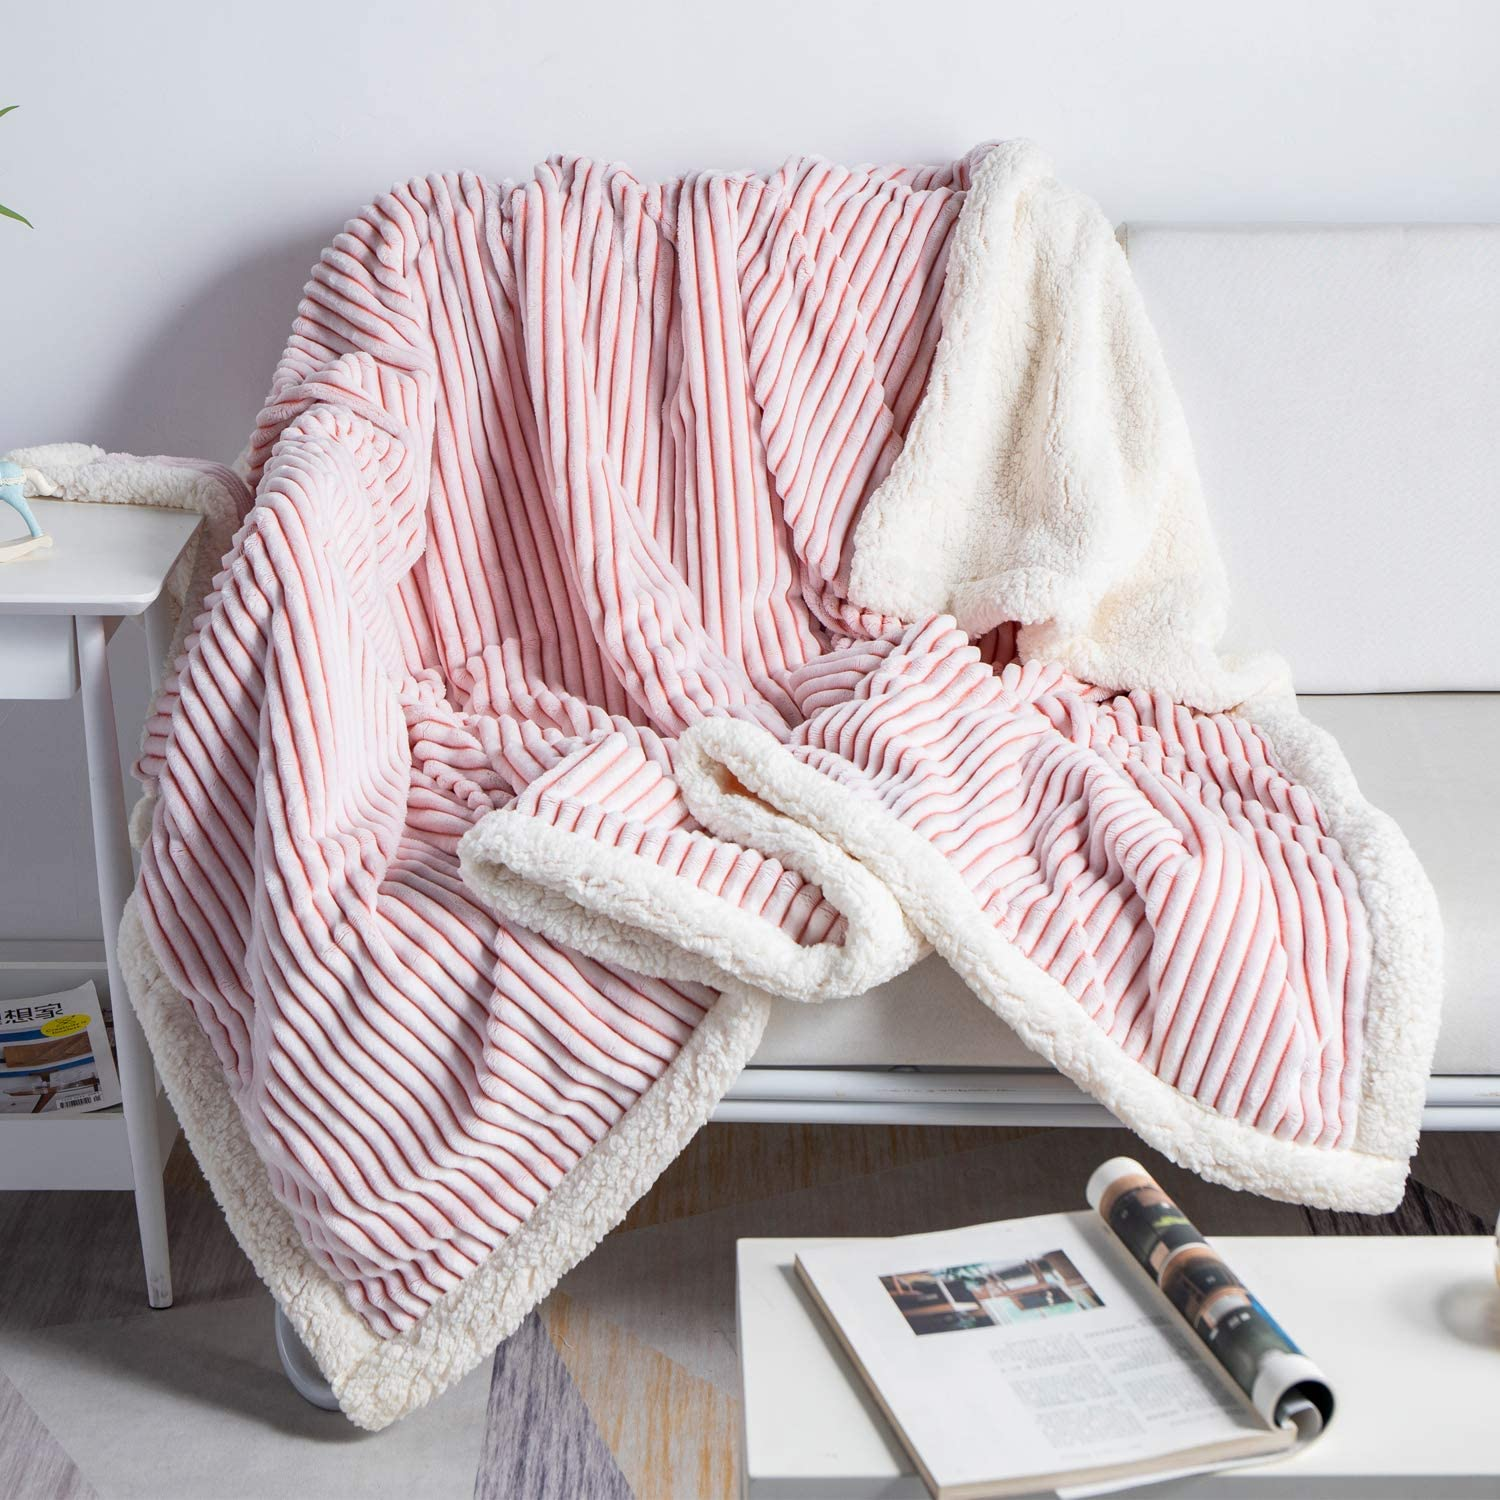 Soft Blanket Plush Fluffy Blanket Warm Cozy with Pink and White Strip Perfect Throw for All Seasons Throw for Couch Bed Sofa (Pink